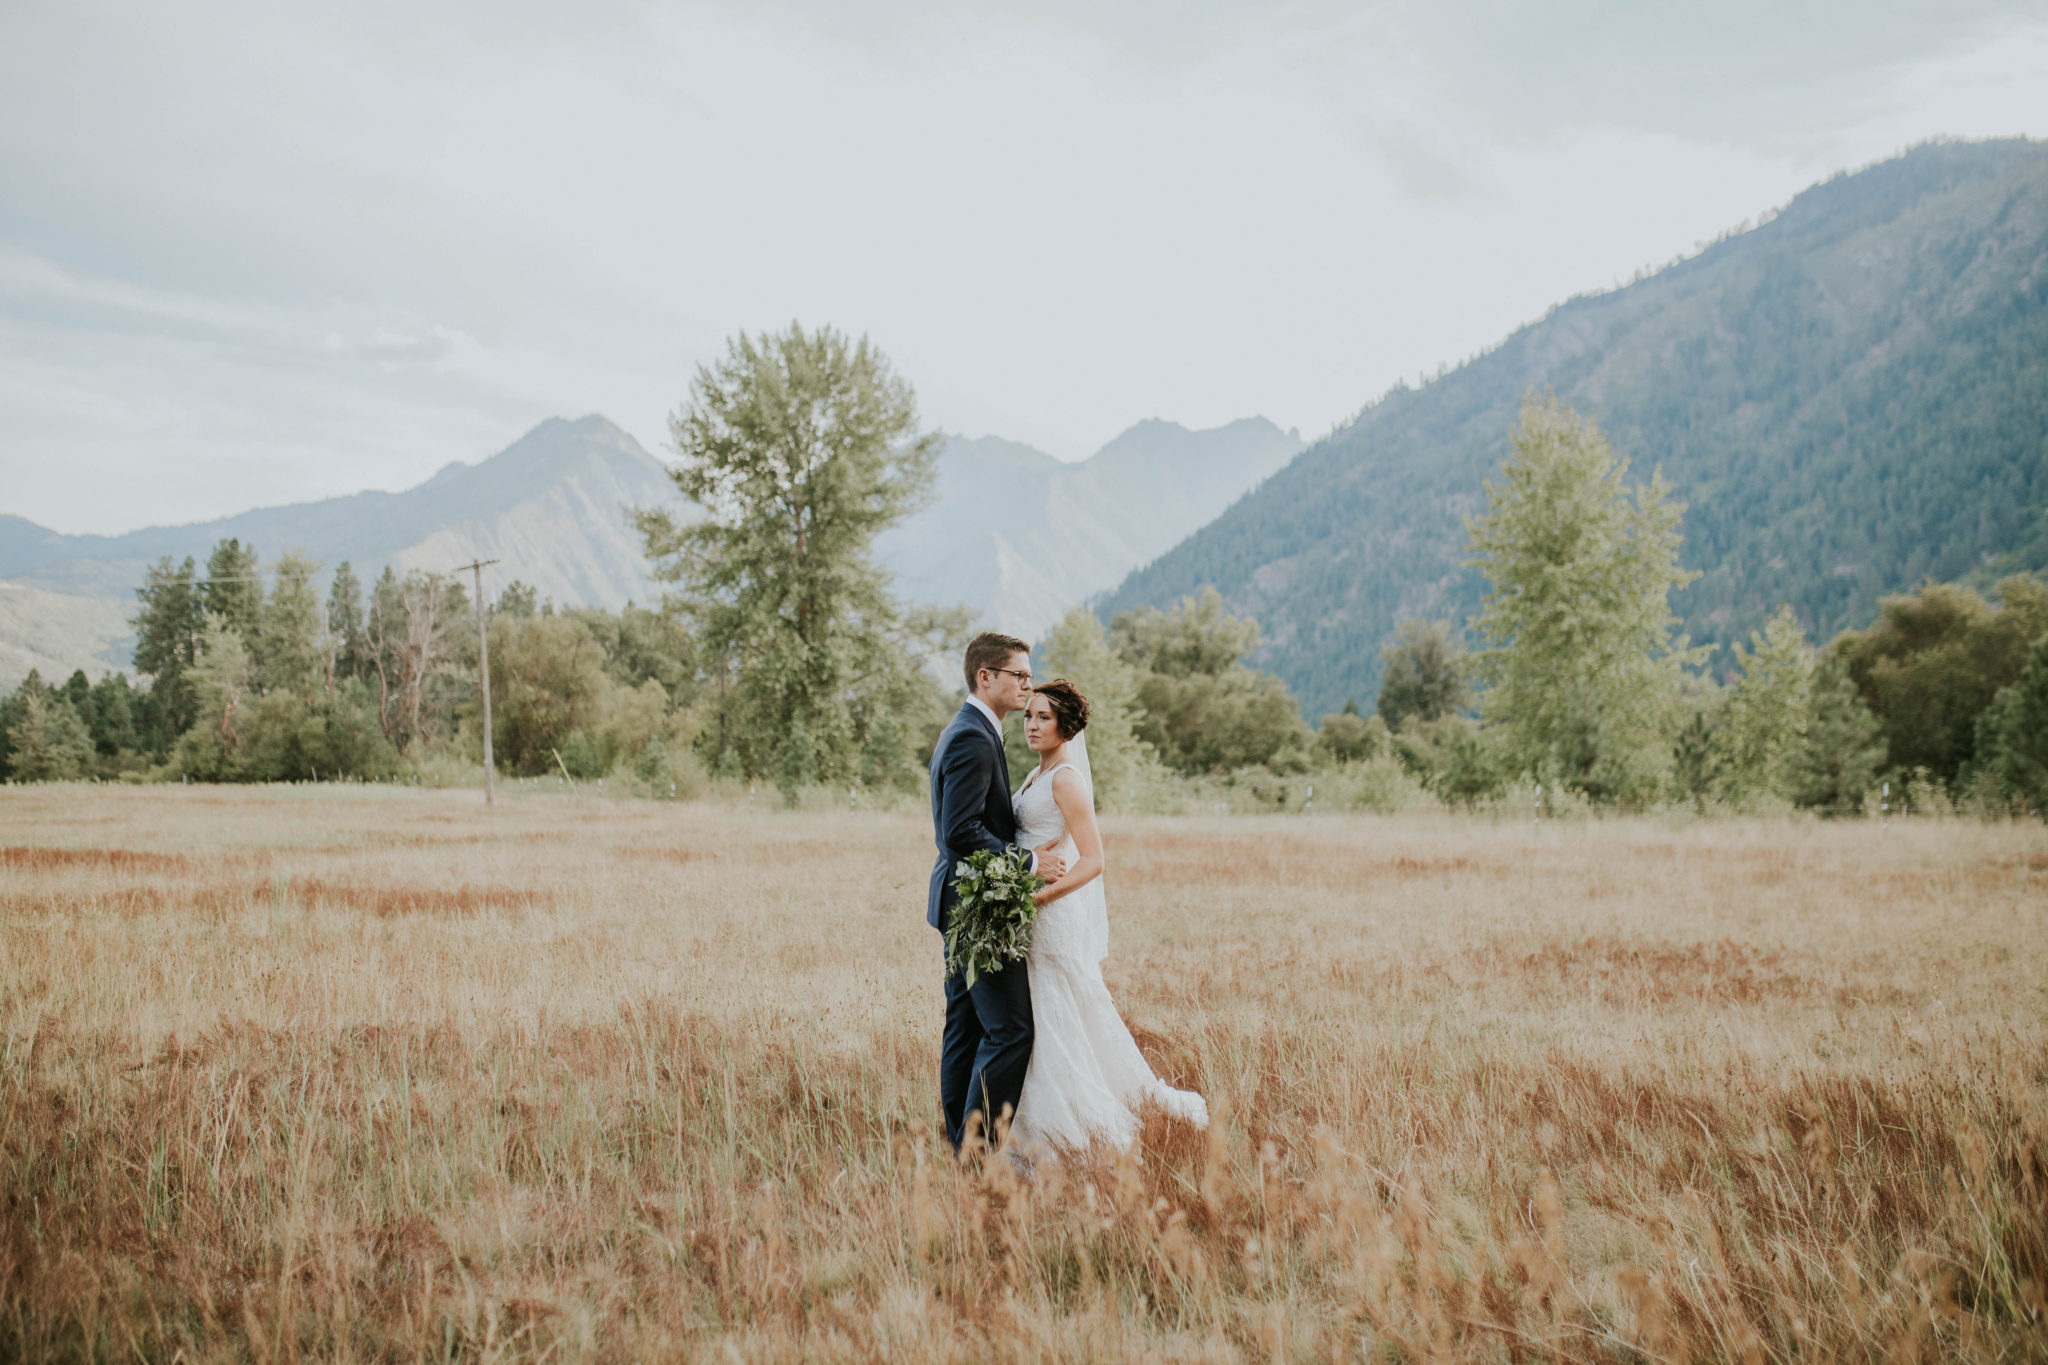 rachel-and-patrick-seattle-washington-wedding-photographer-517